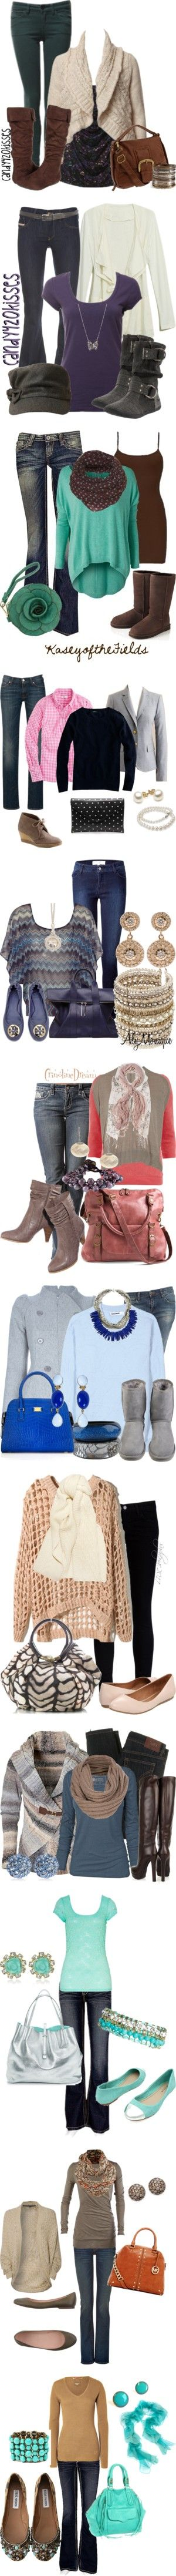 """Outfits I would wear :)"" by clojogar ❤ liked on Polyvore"